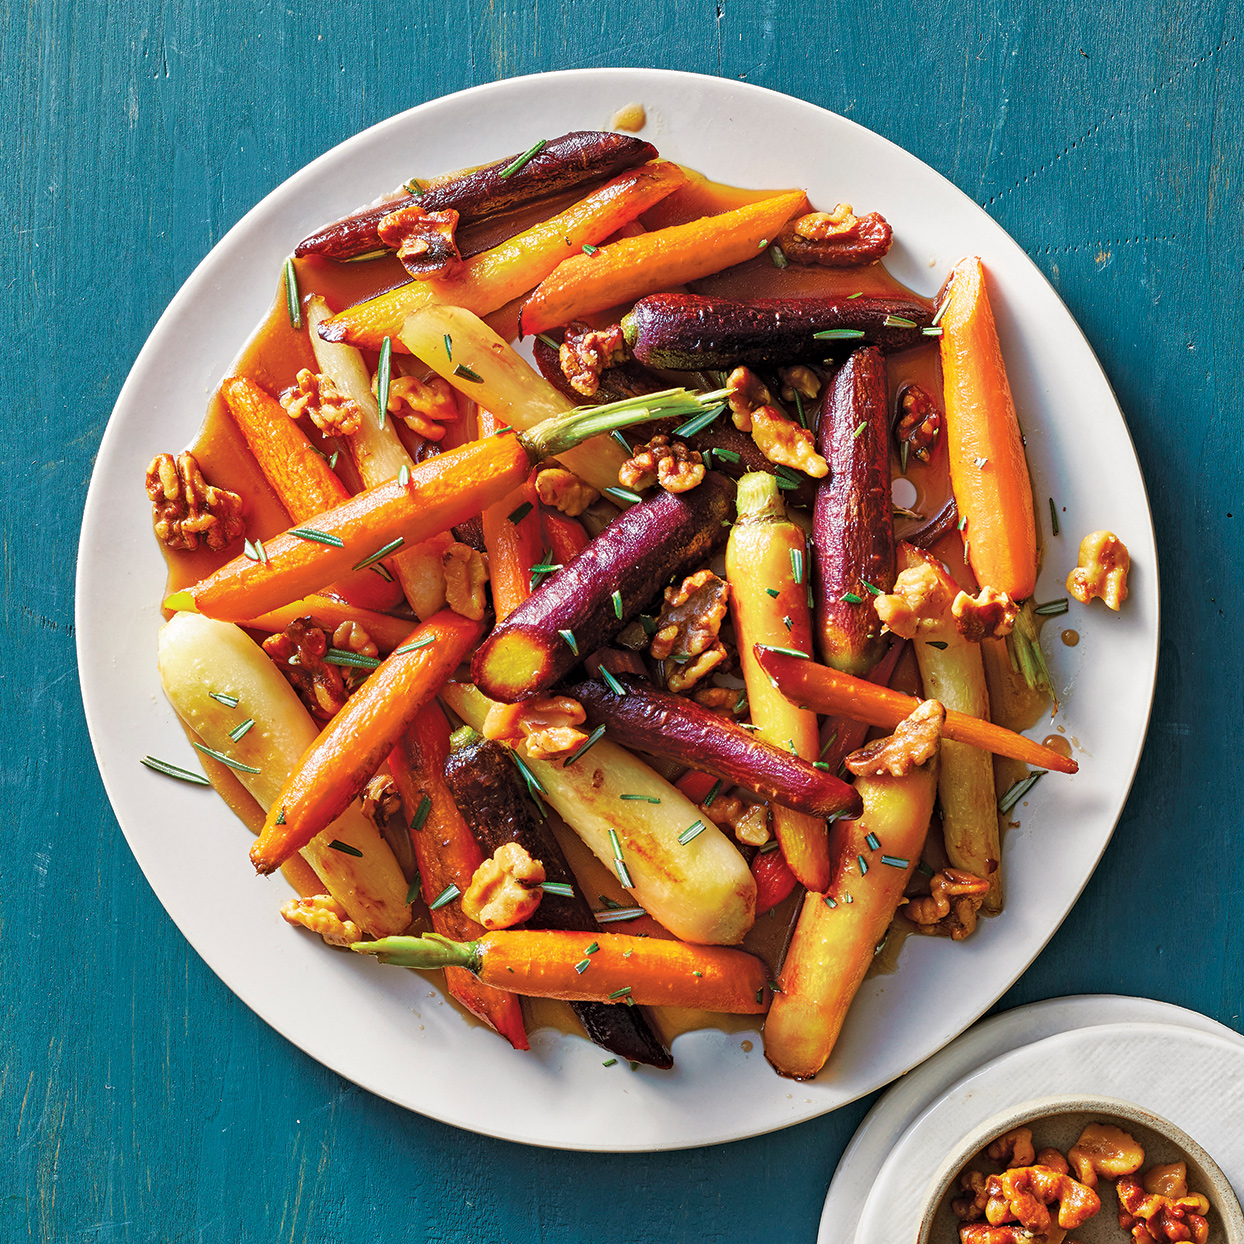 The hint of maple syrup and brandy elevates these slow-cooker carrots, transforming them into a holiday-worthy side dish. You can easily double this to feed a crowd. We use stem-on rainbow carrots for their beauty, but regular carrots work just as well.